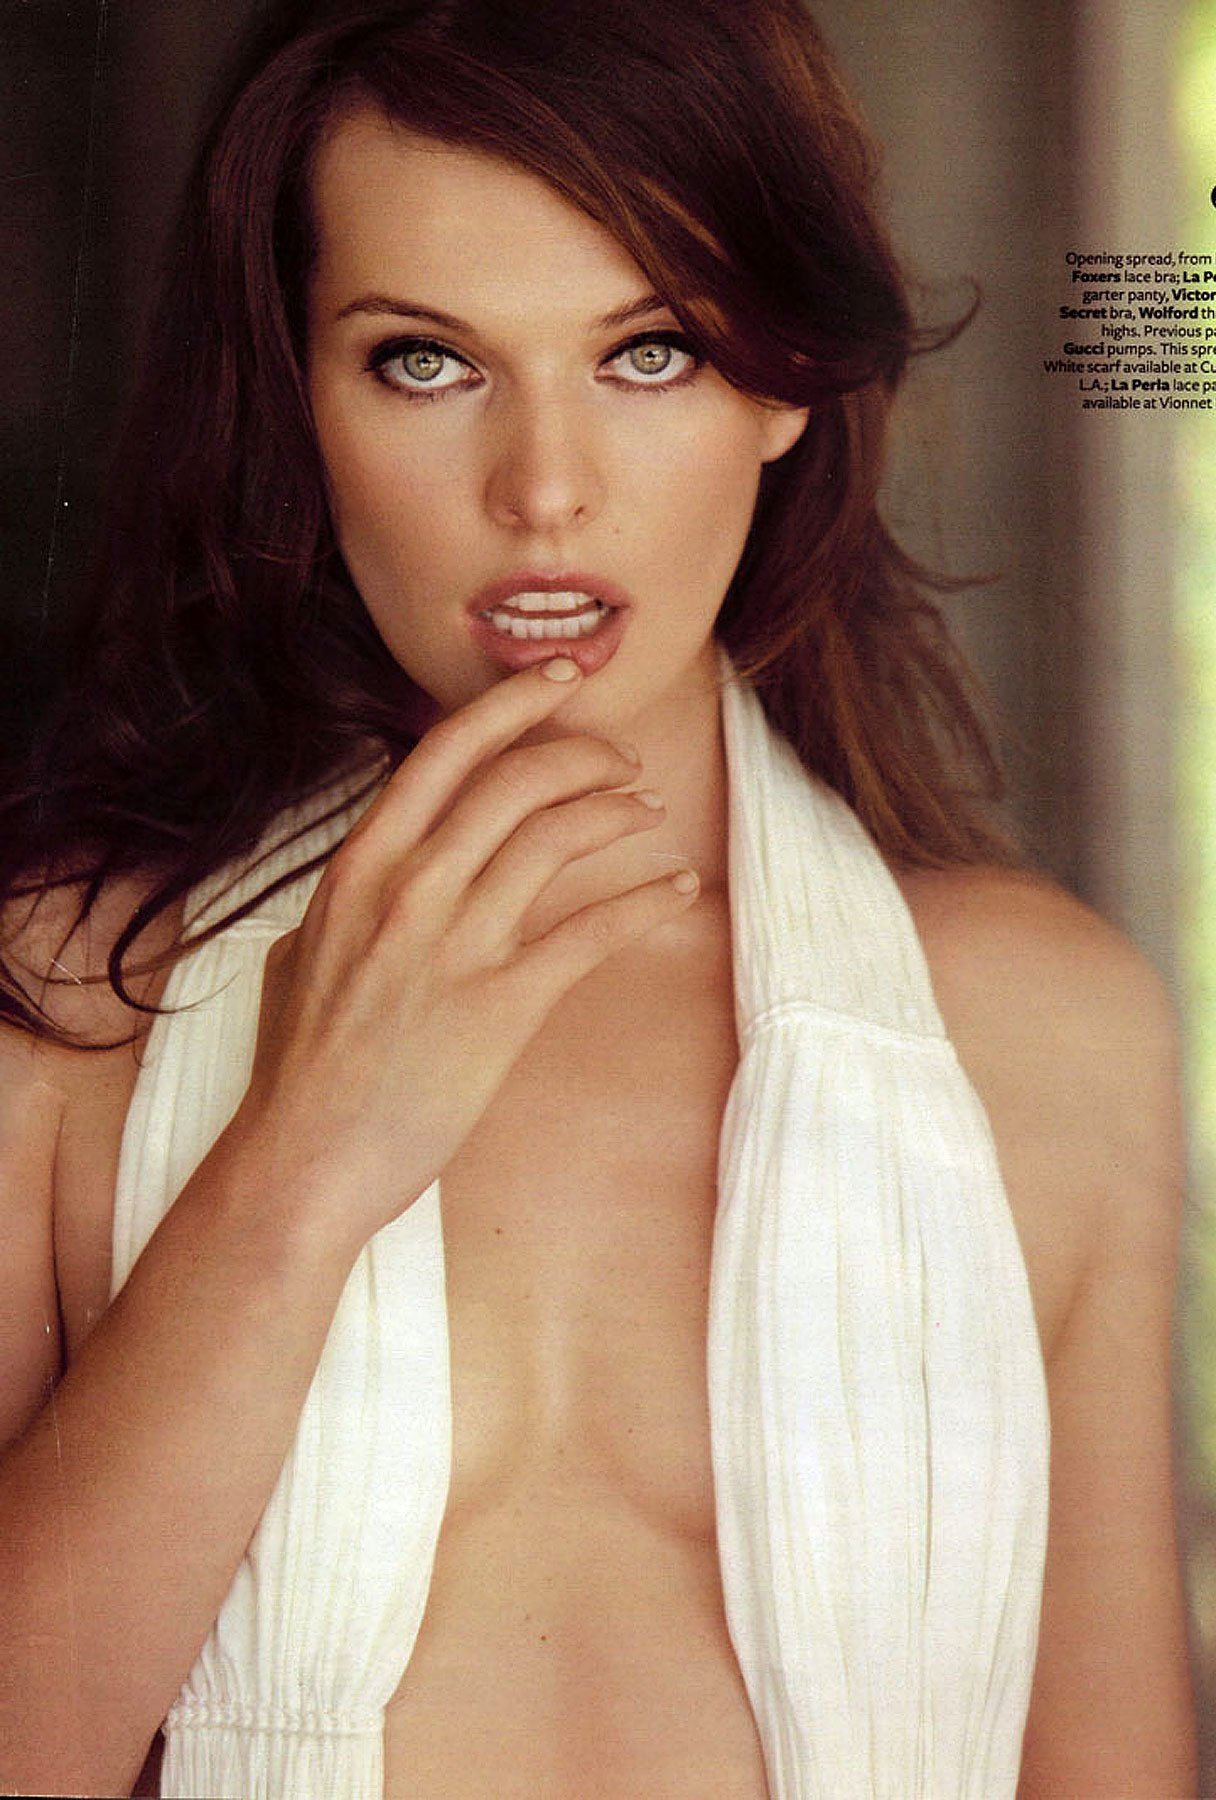 Milla Jovovich Strips Down for Maxim